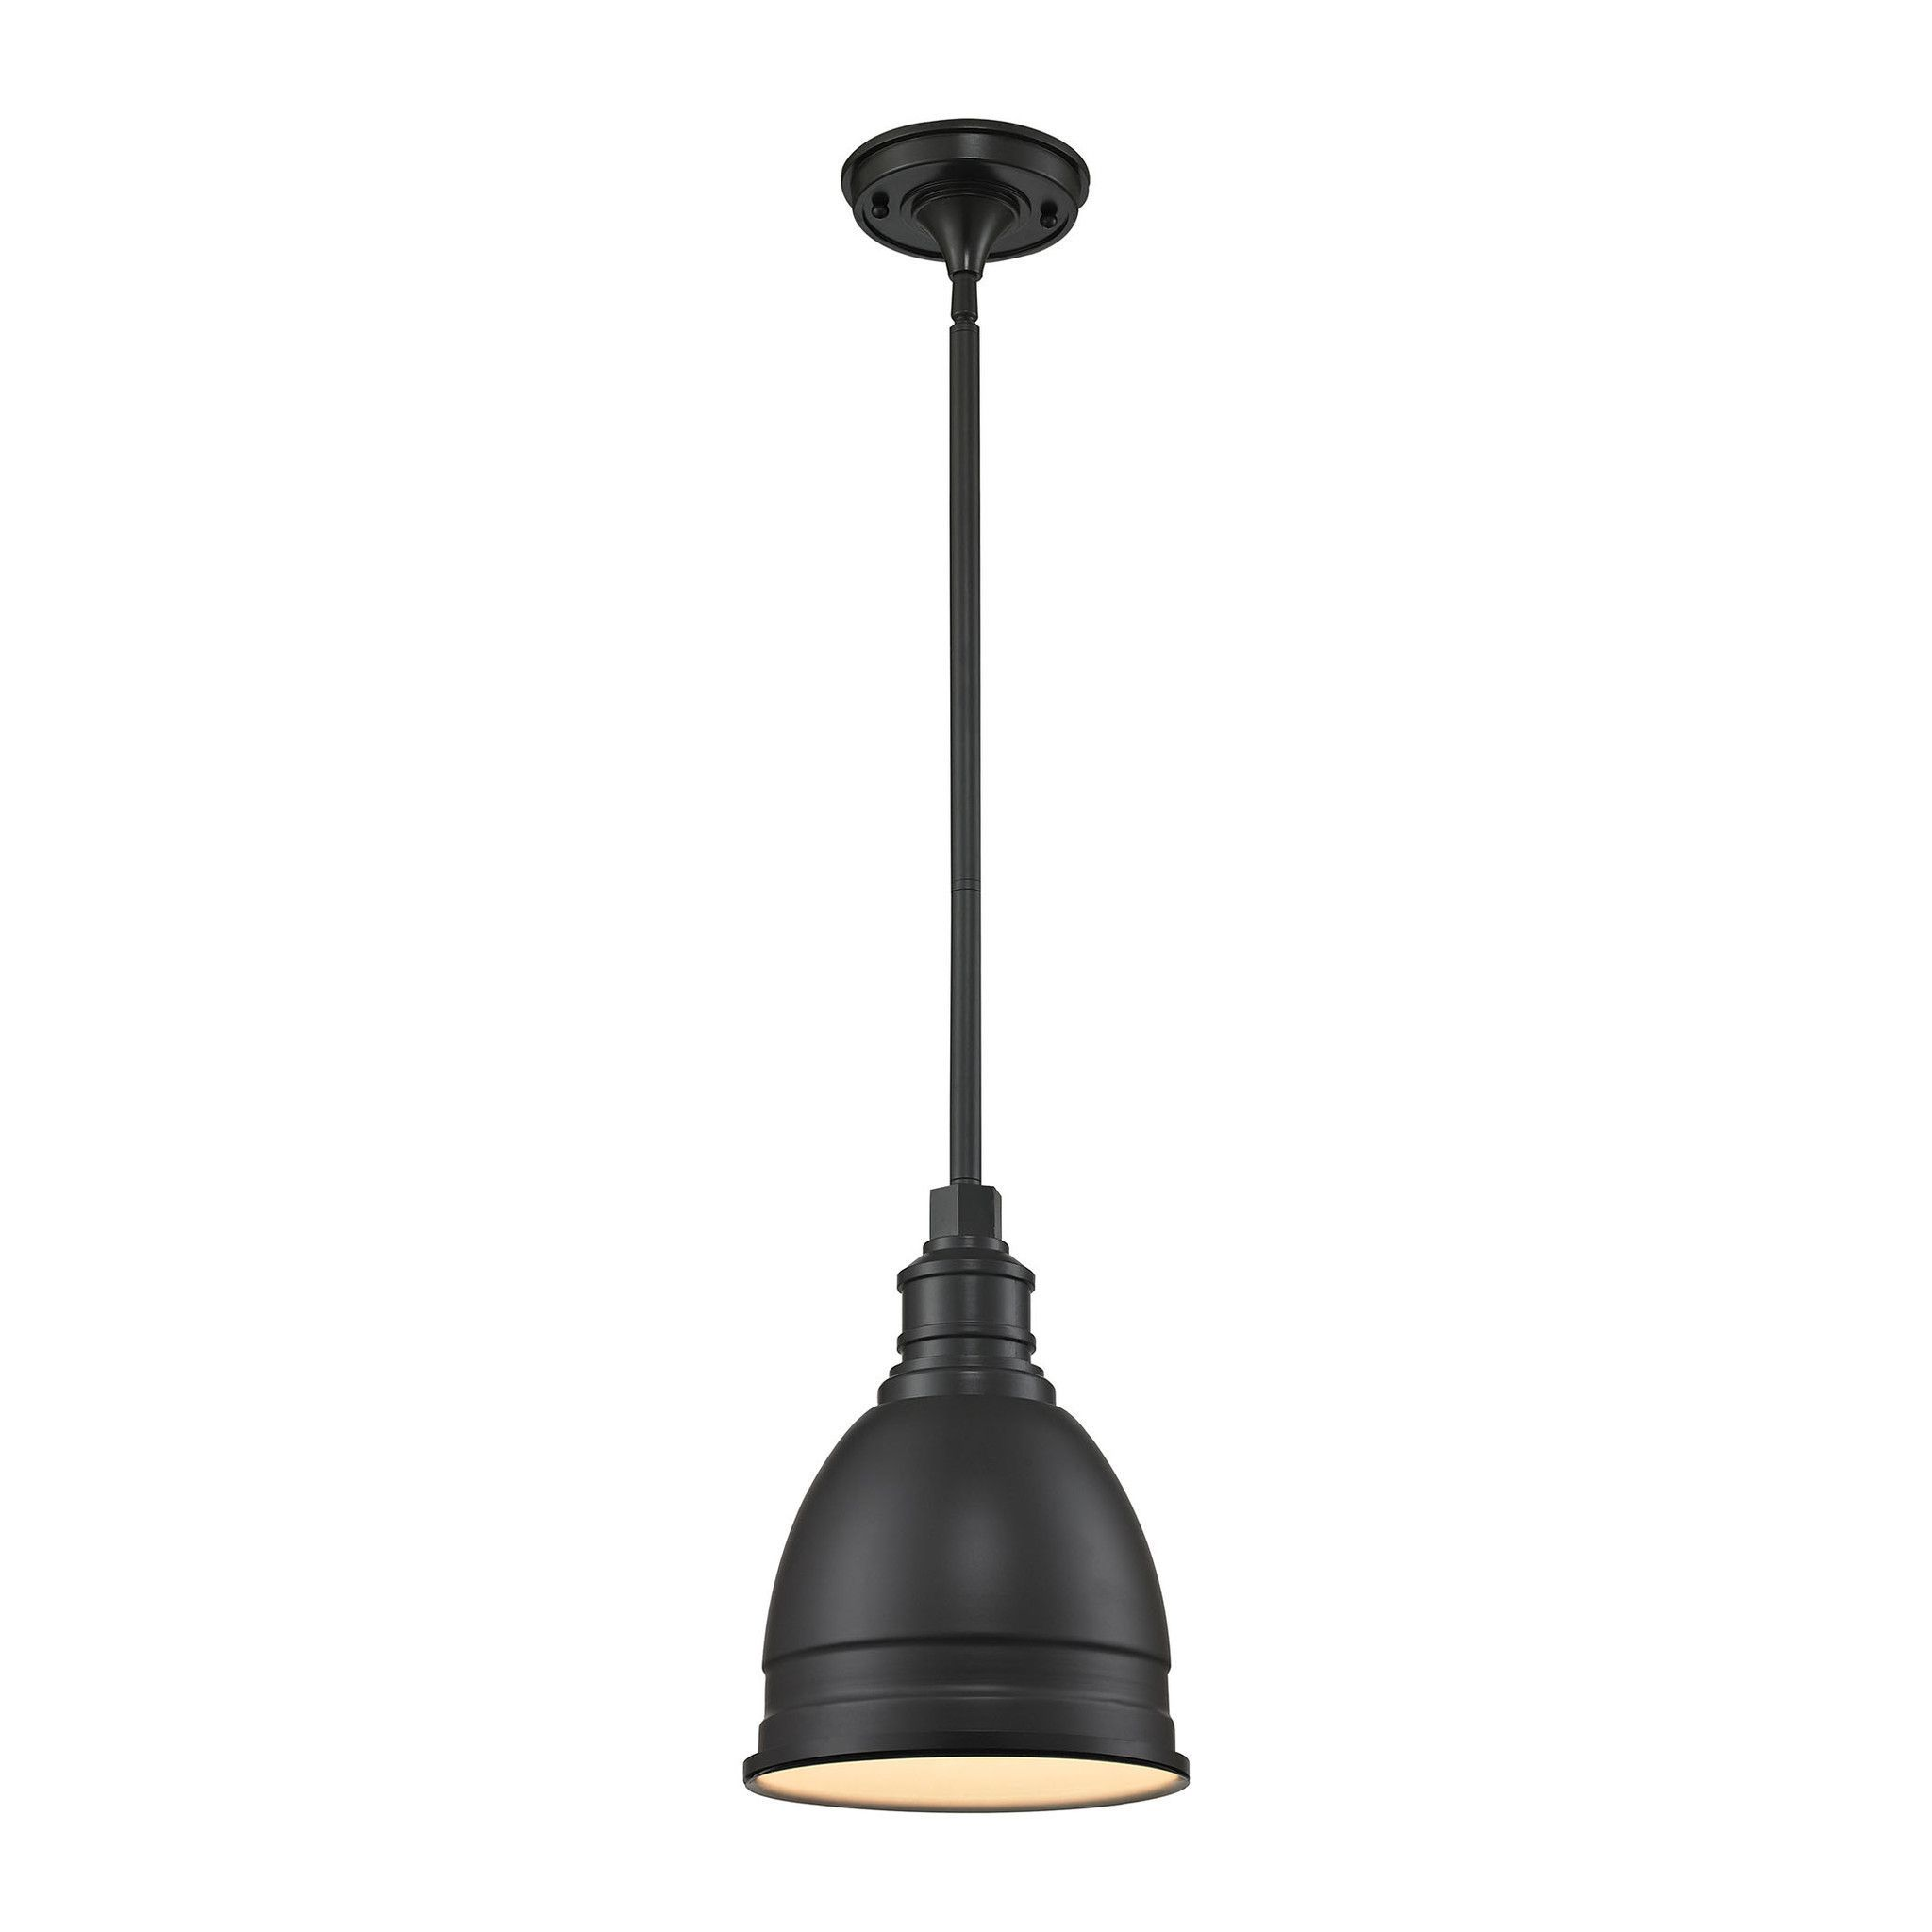 ELK Lighting 66860/1 Carolton Collection Oil Rubbed Bronze Finish